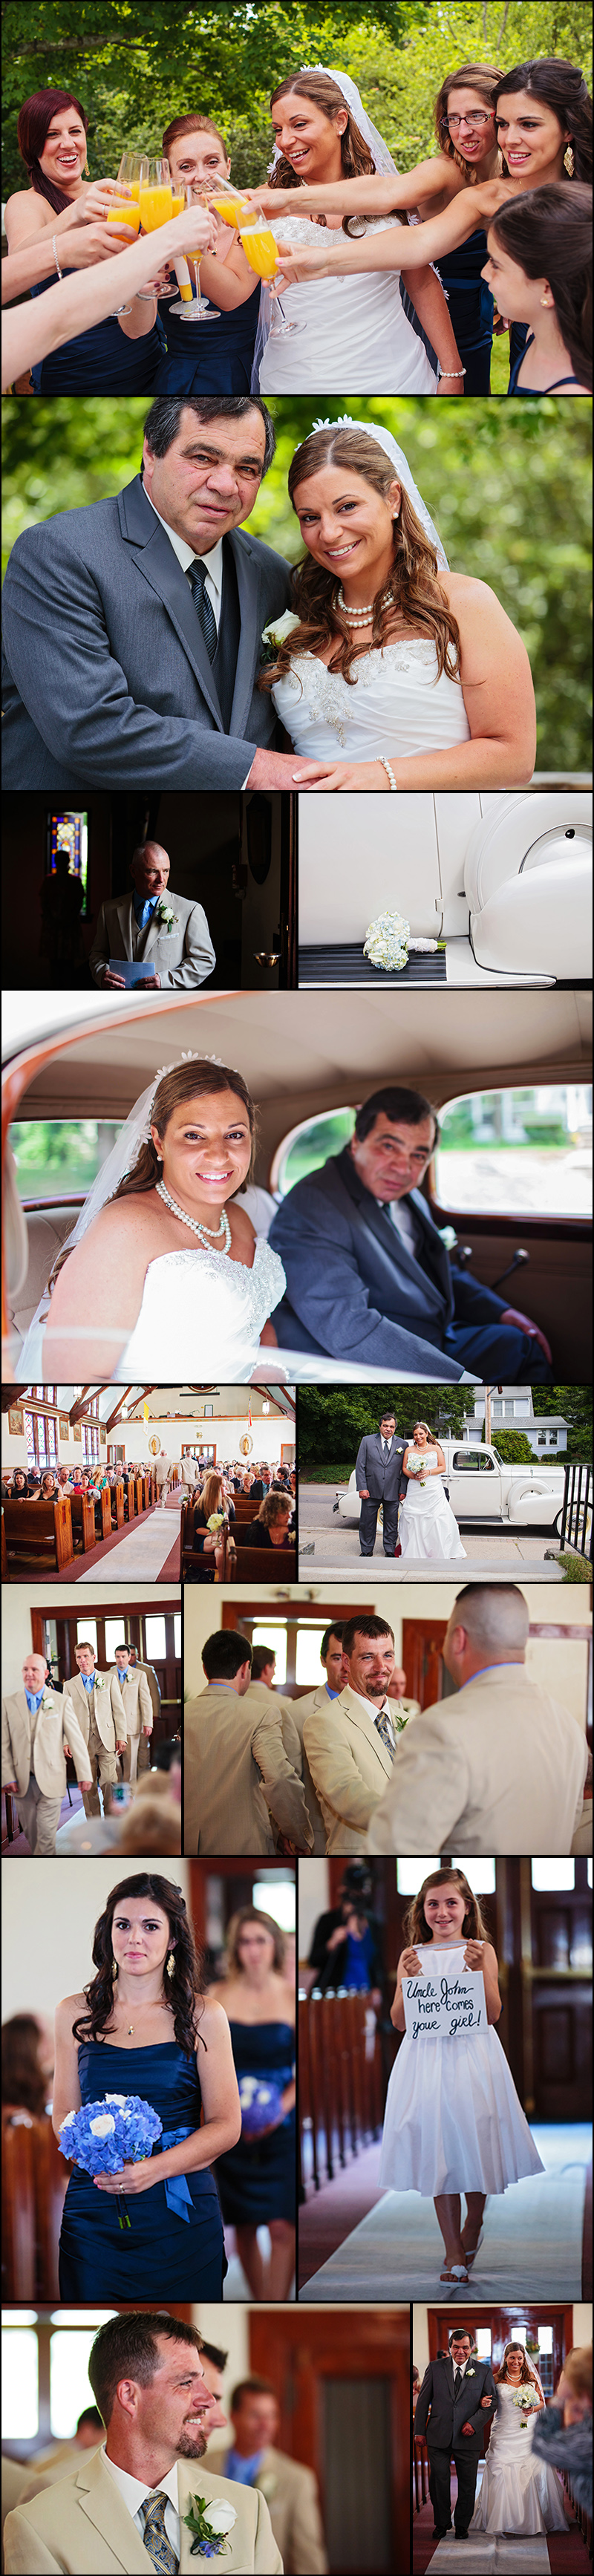 WEDDING PHOTOGRAPHERS IN BOSTON